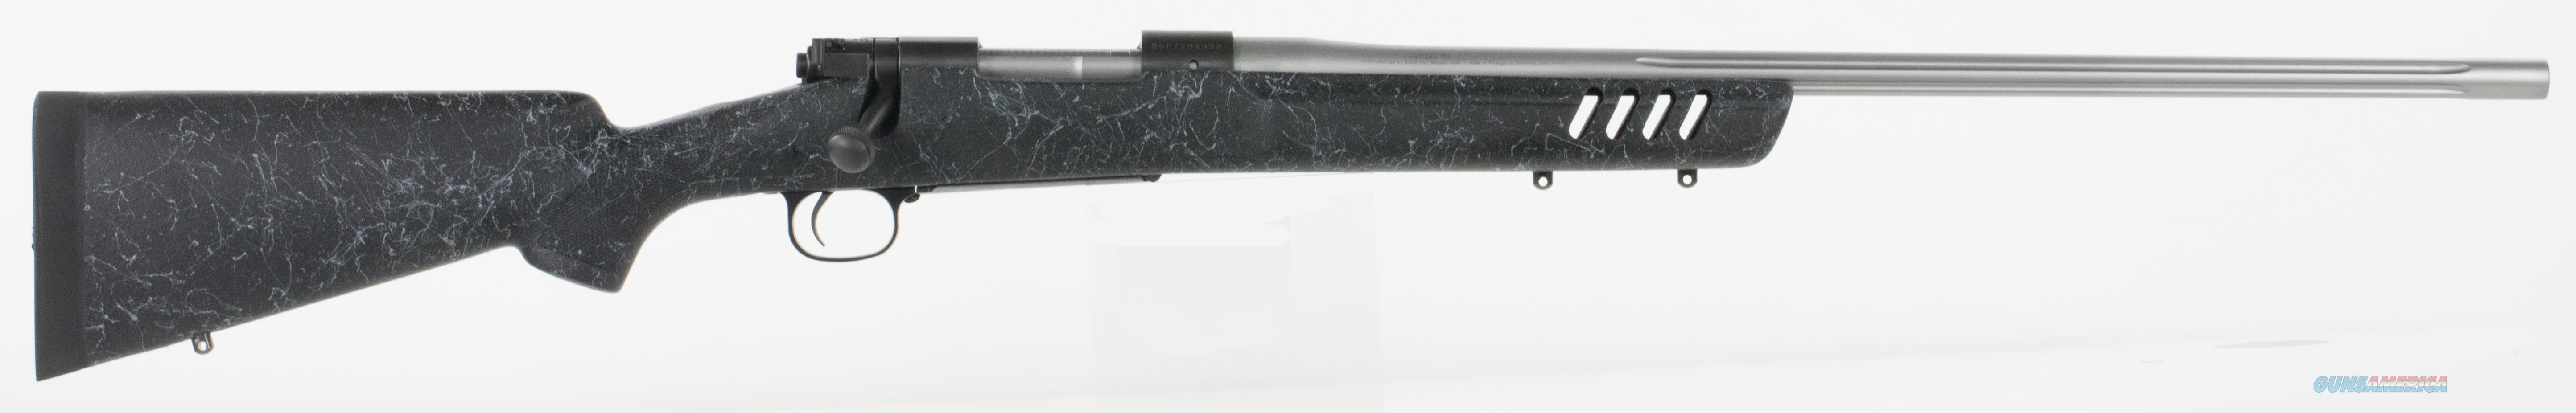 "Winchester Guns 535207264 70 Coyote Light Bolt 270 Wsm 24"" 3+1 Bell & Carlson Gray Stk Blued 535207264  Guns > Rifles > W Misc Rifles"